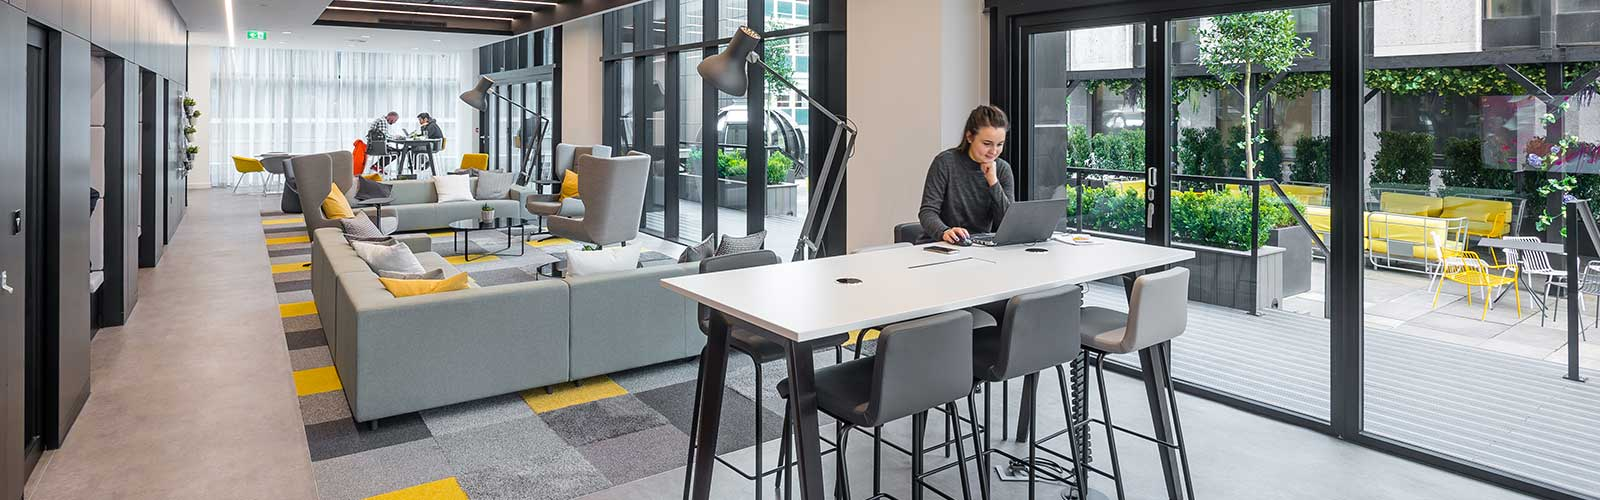 How do you design a coworking space?